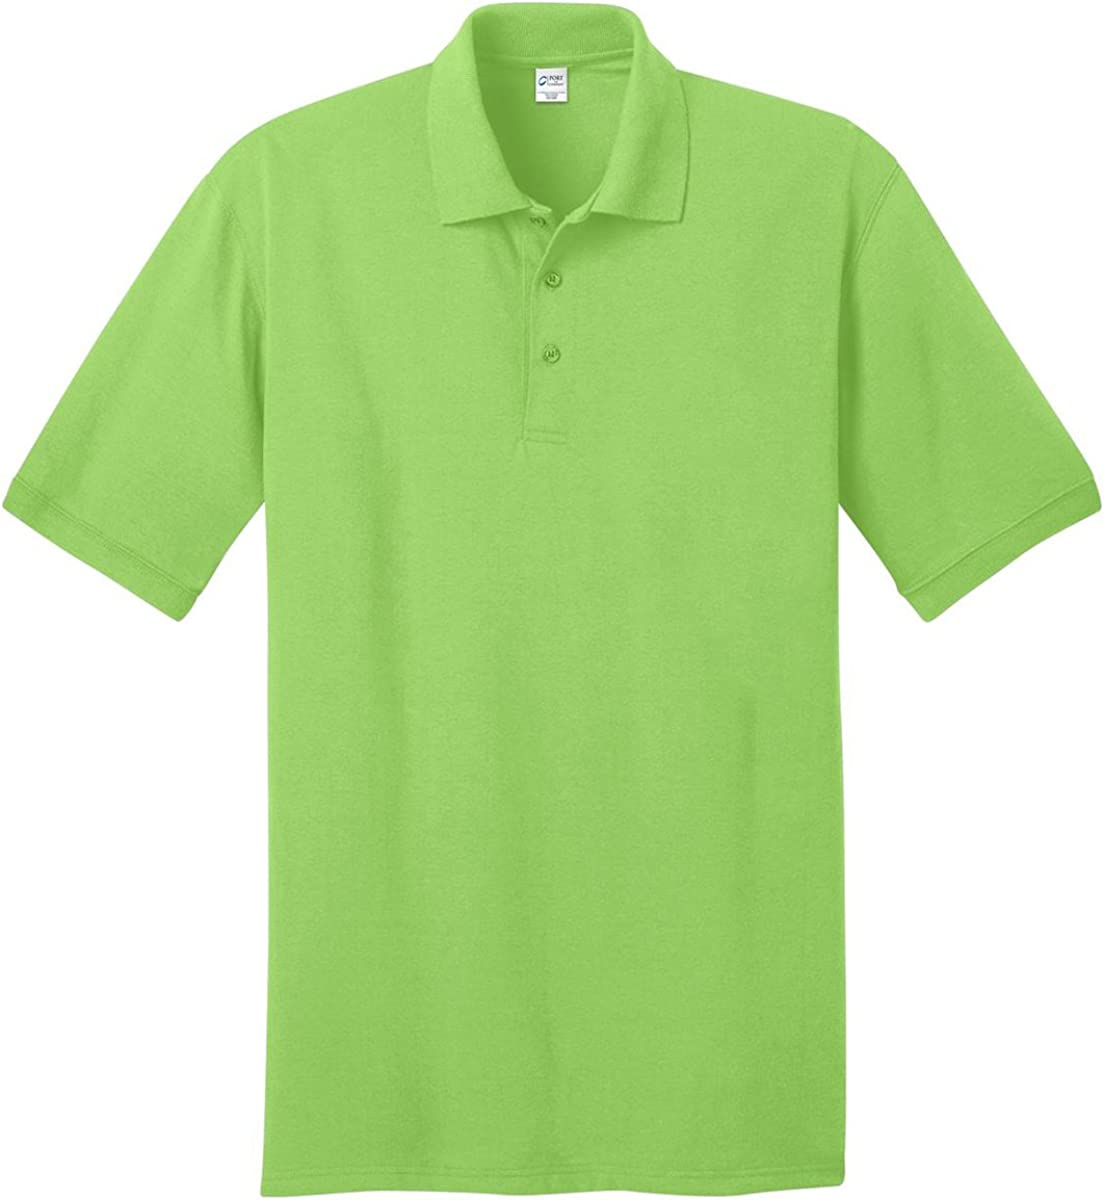 Port & Company Tall 5.5-Ounce Jersey Knit Polo Shirt, Lime, Large Tall